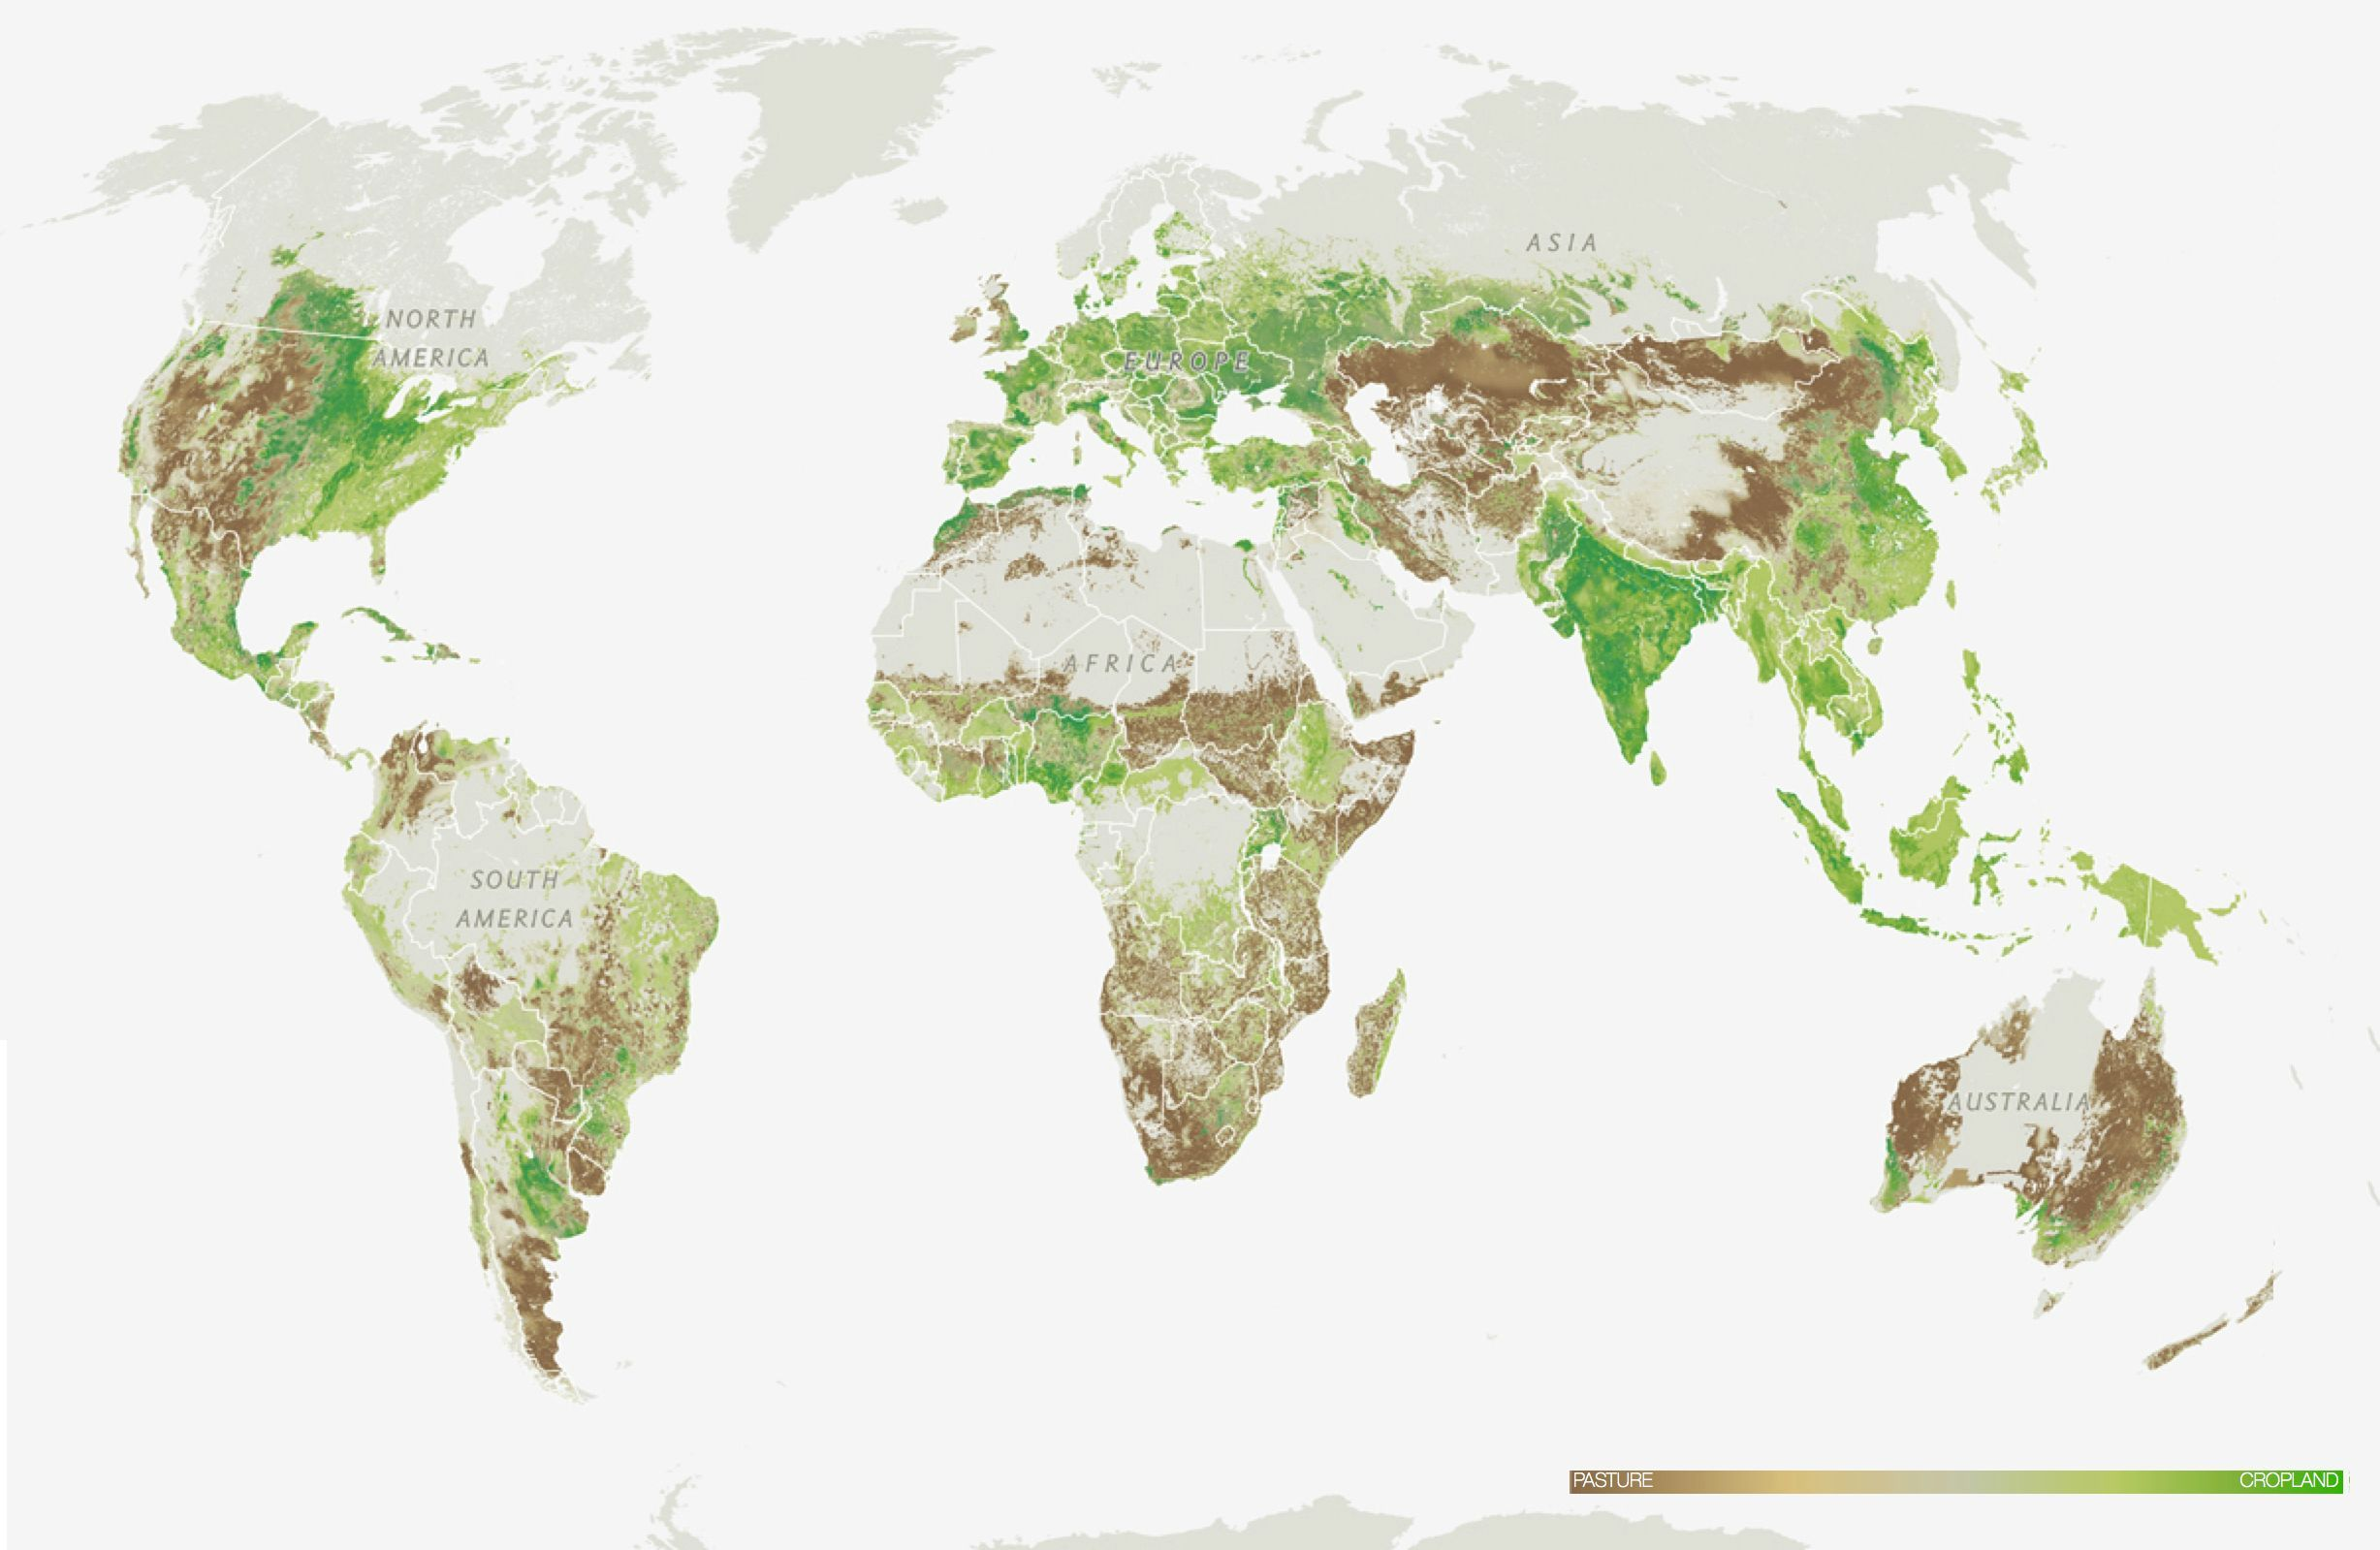 Pasture vs cropland map by National Geographic